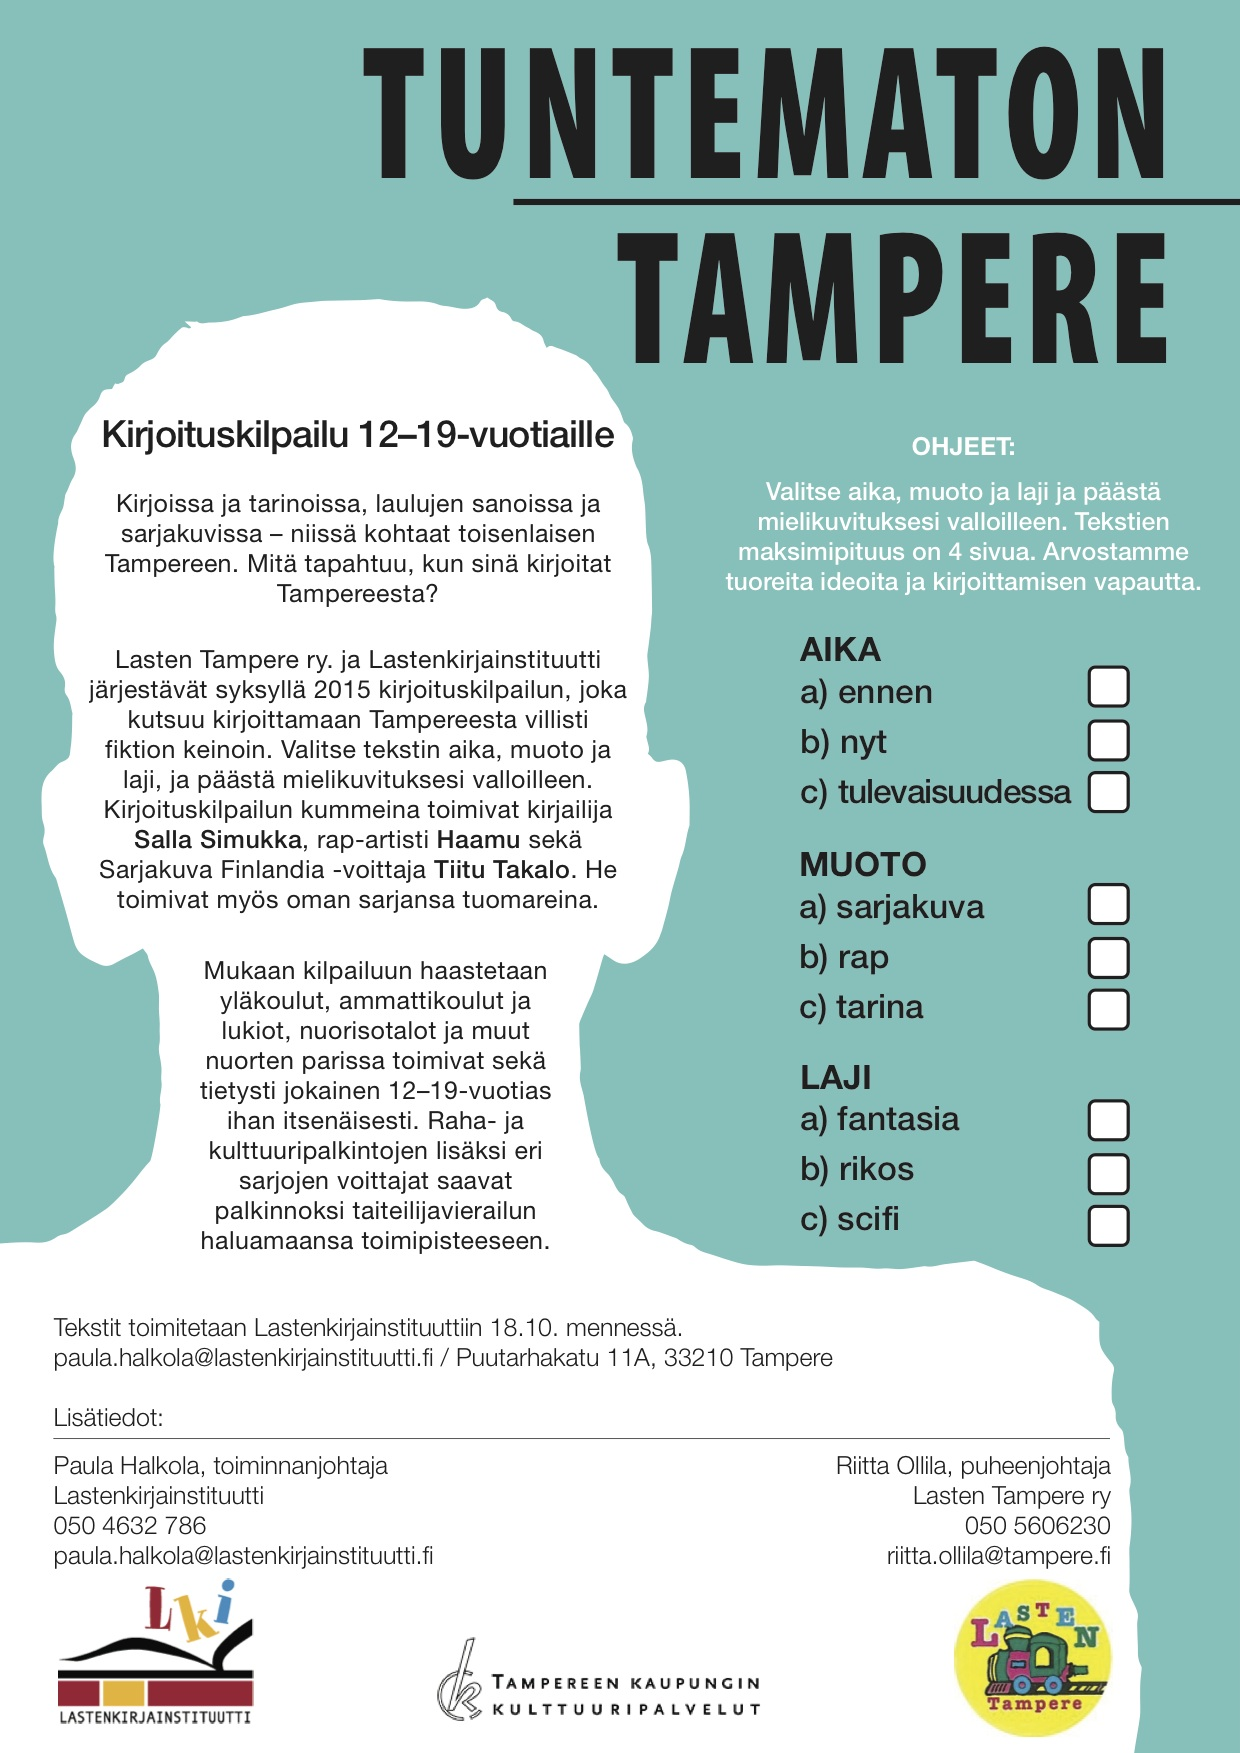 TuntematonTampere_flyer_jpg.jpg